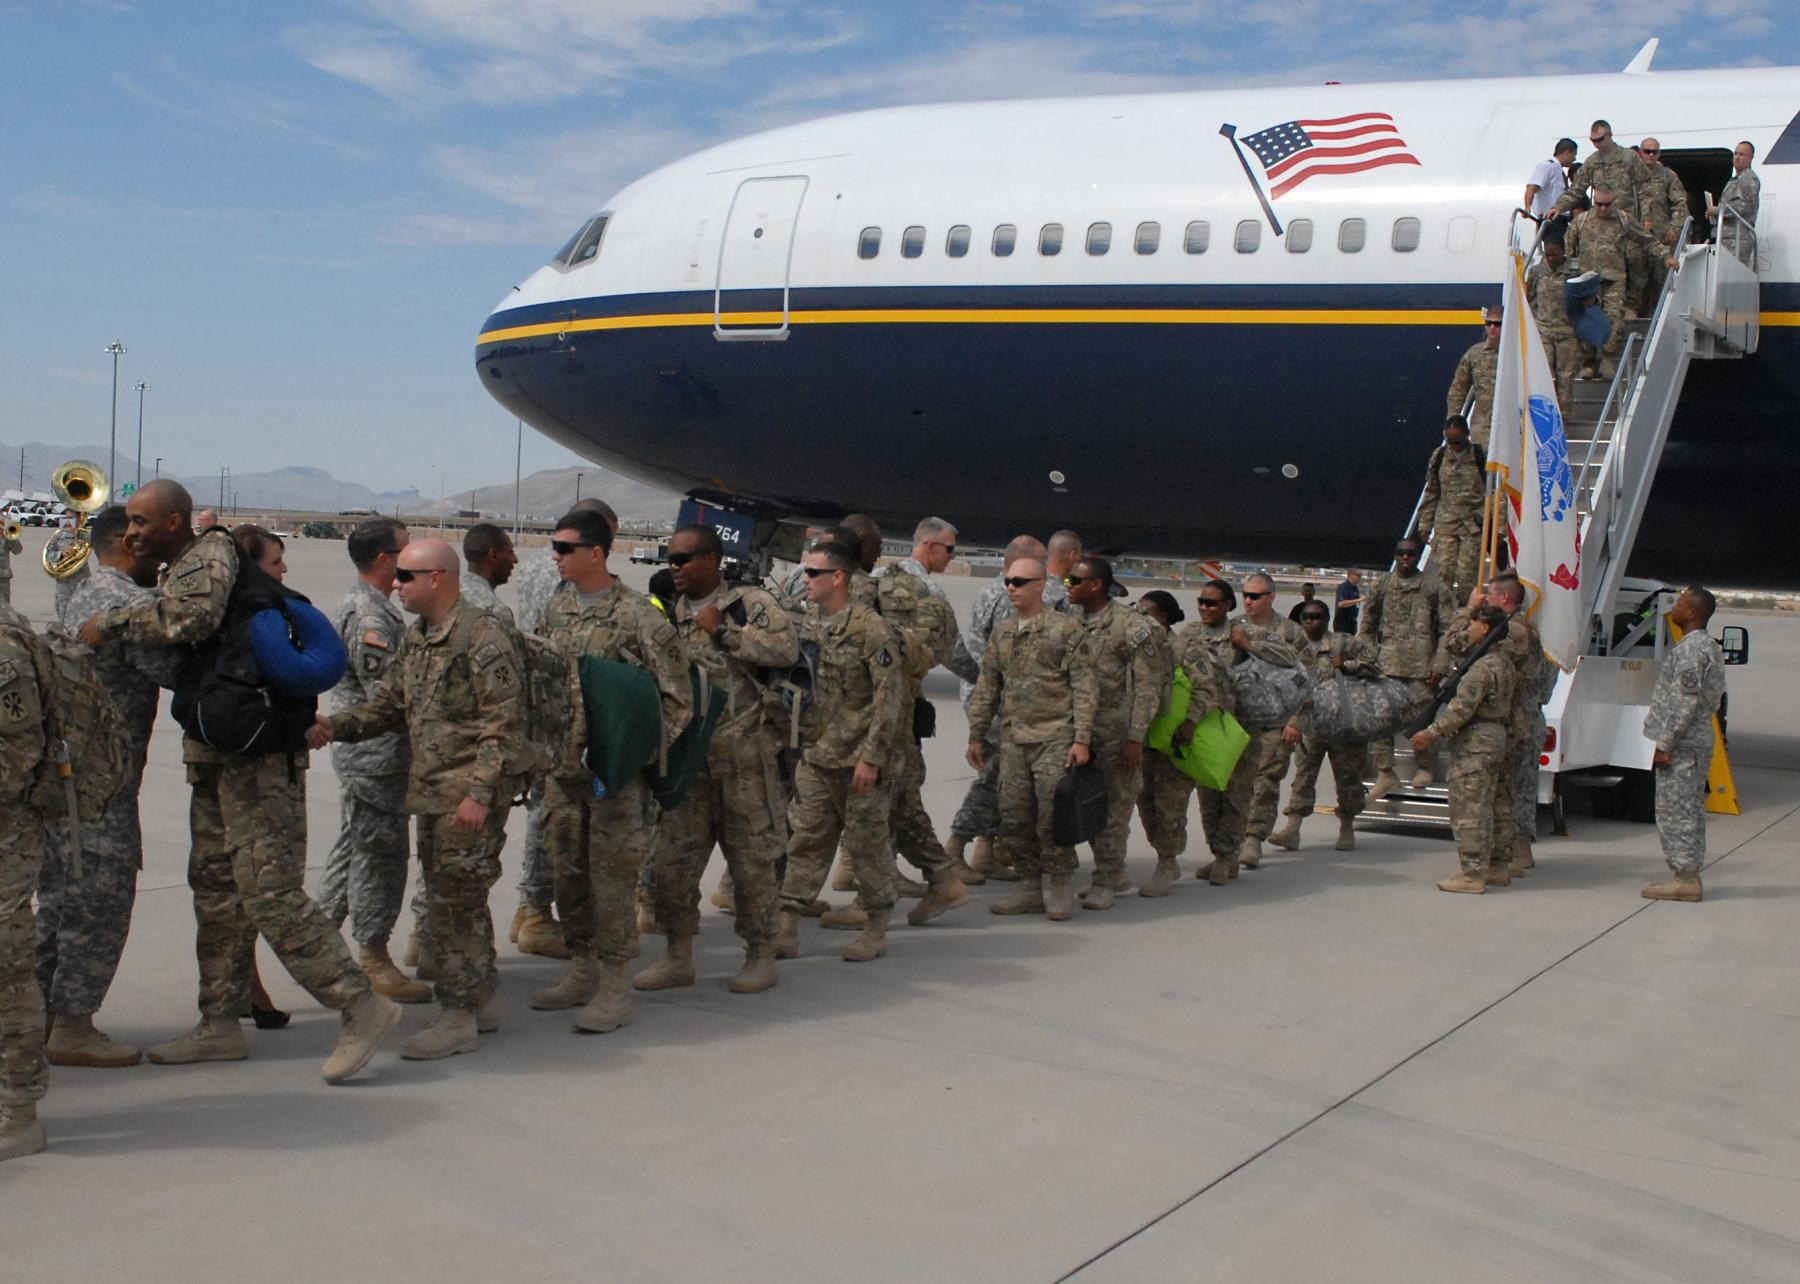 11th ADA 'Fighting Deuce' soldiers return home after OEF